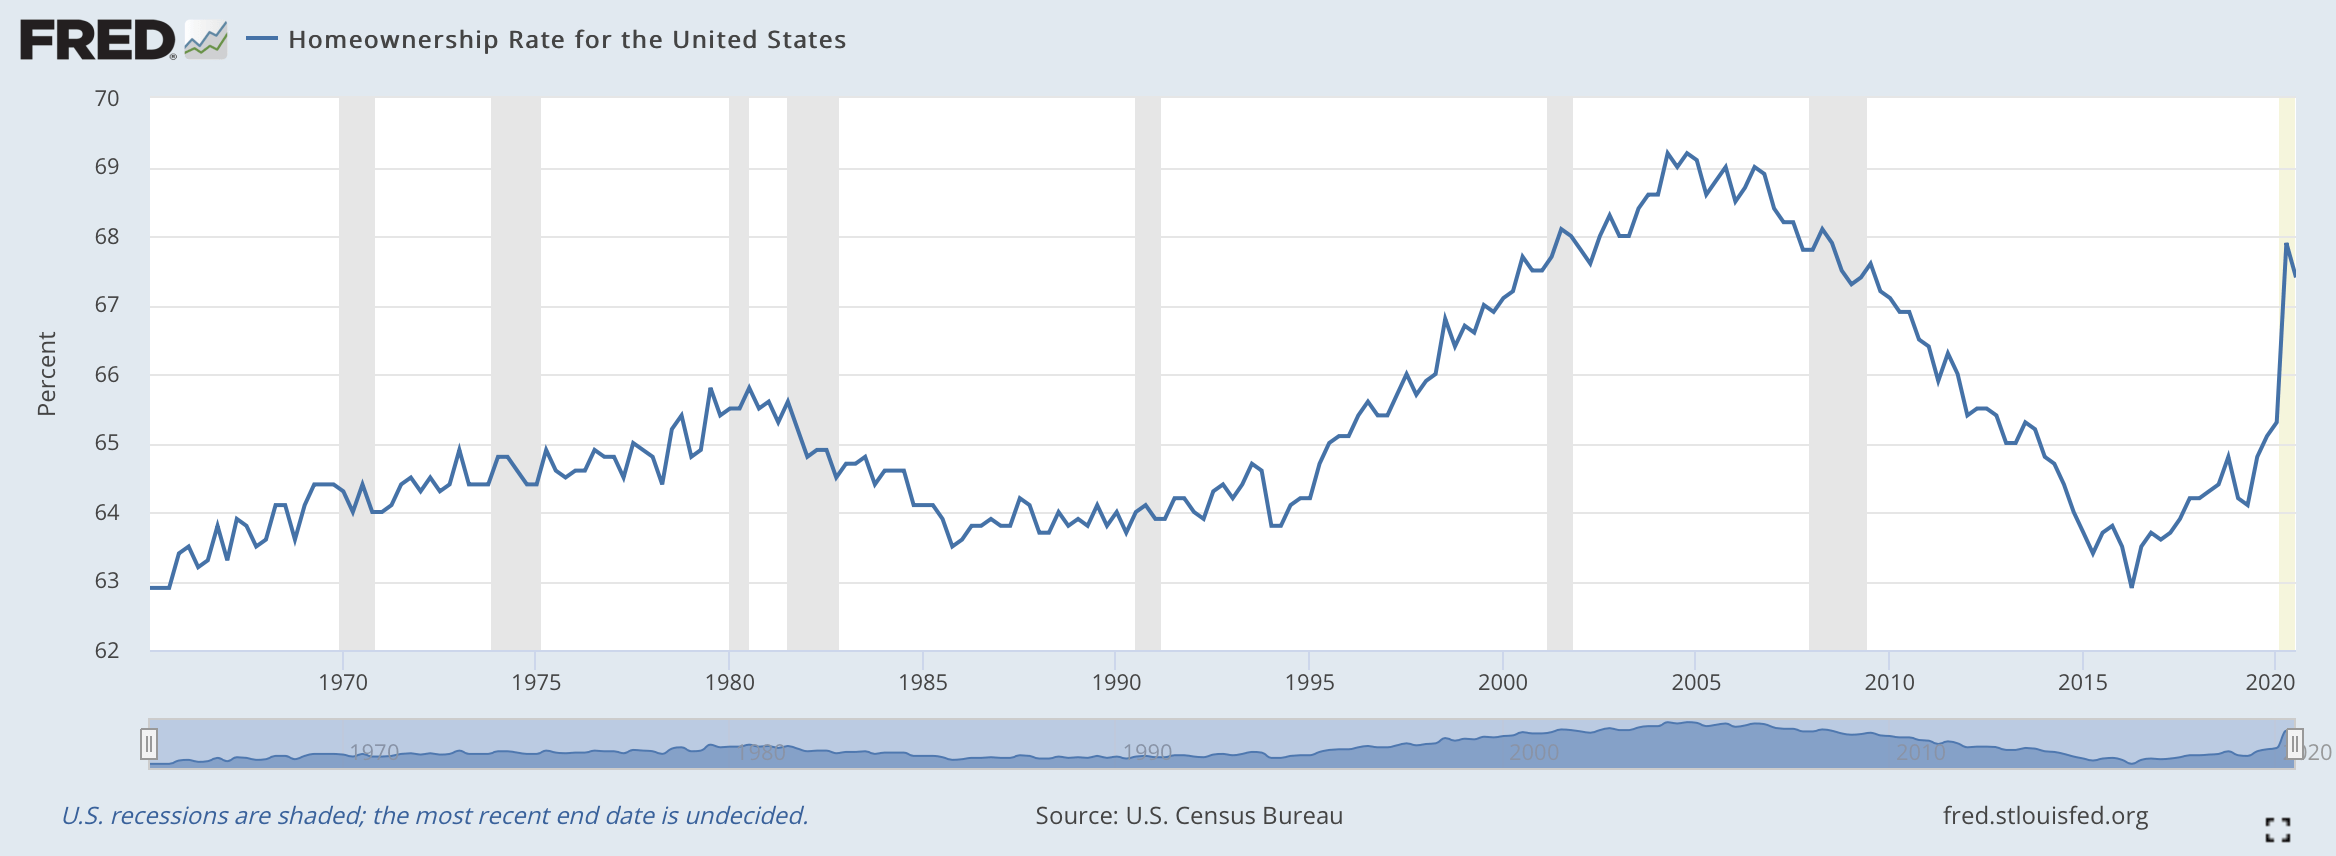 FRED Homeownership Rate 2021